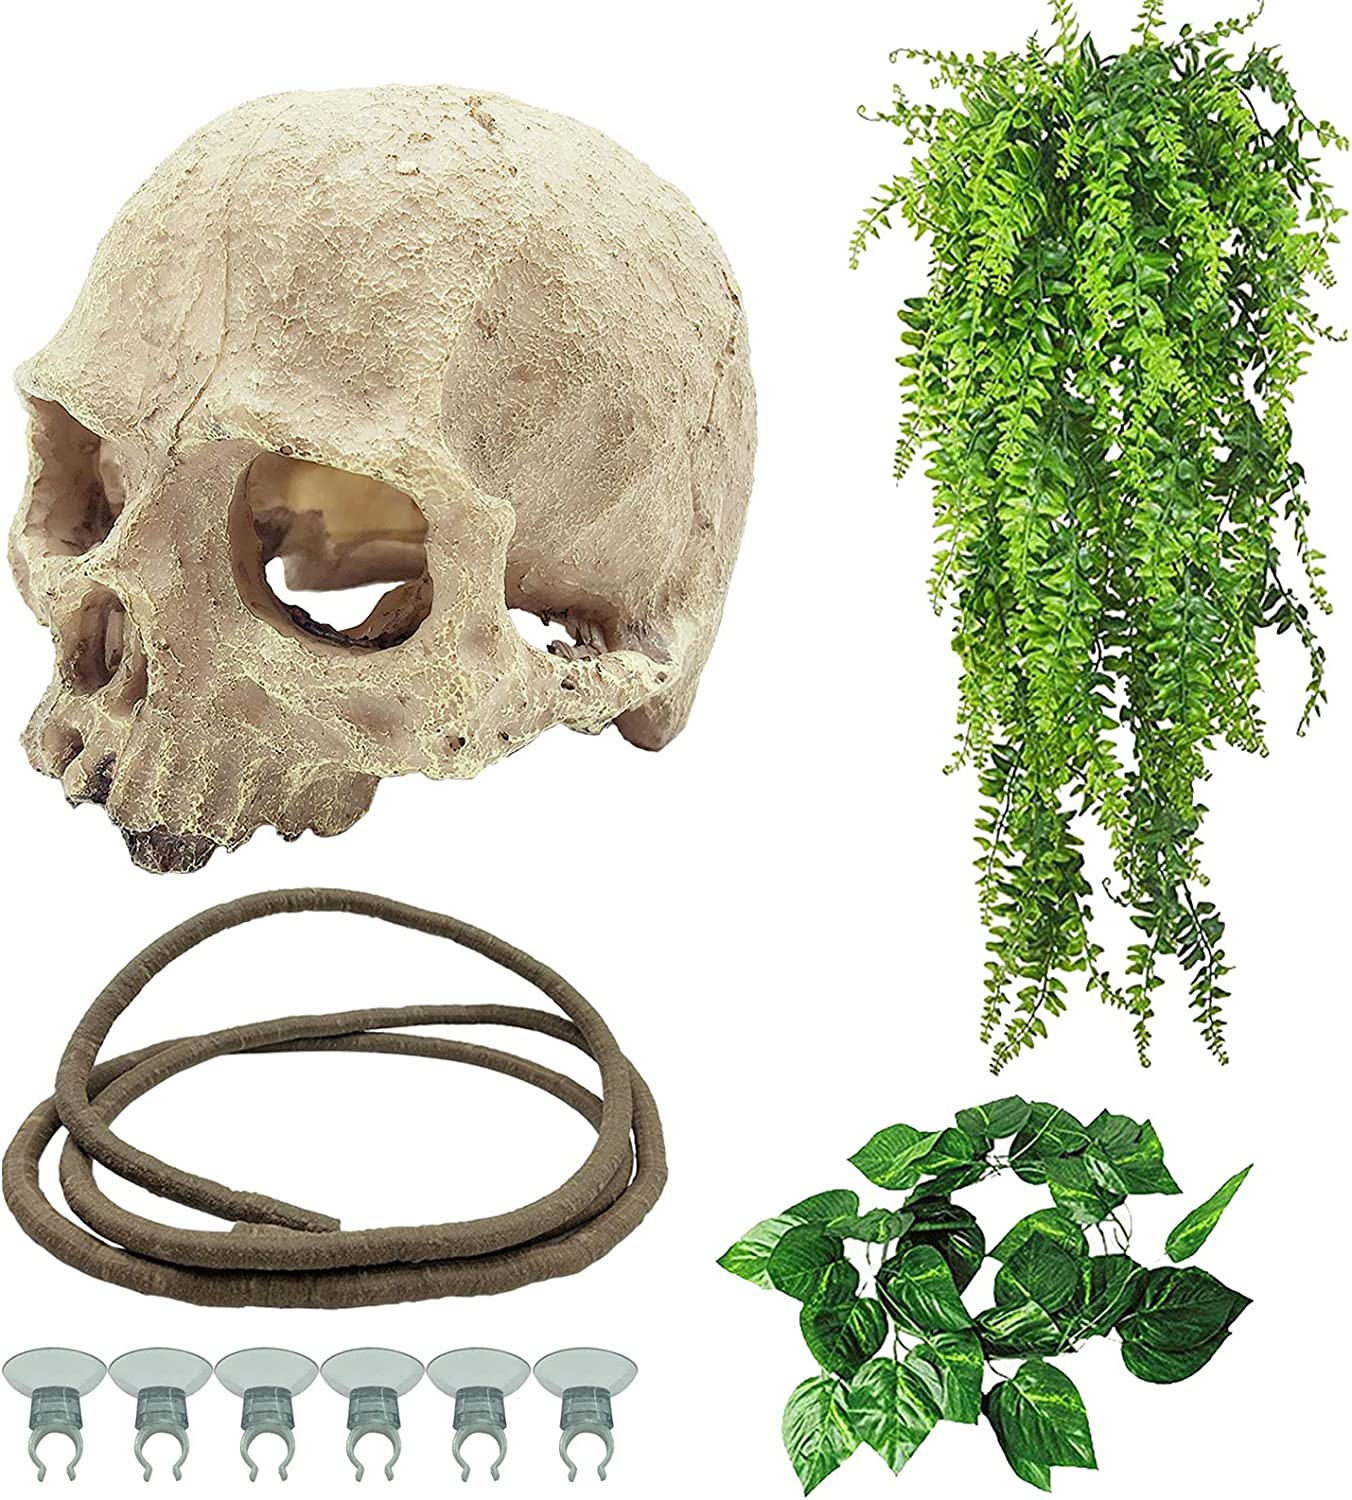 Tfwadmx Reptiles Skull Hide Decorations Bearded Dragon Tank Accessories Ornament Gecko Hideouts Cave Snake Habitat Jungle Climber Bendable Vines Leaves for Lizards,Chameleon,Spider (4 Pcs)